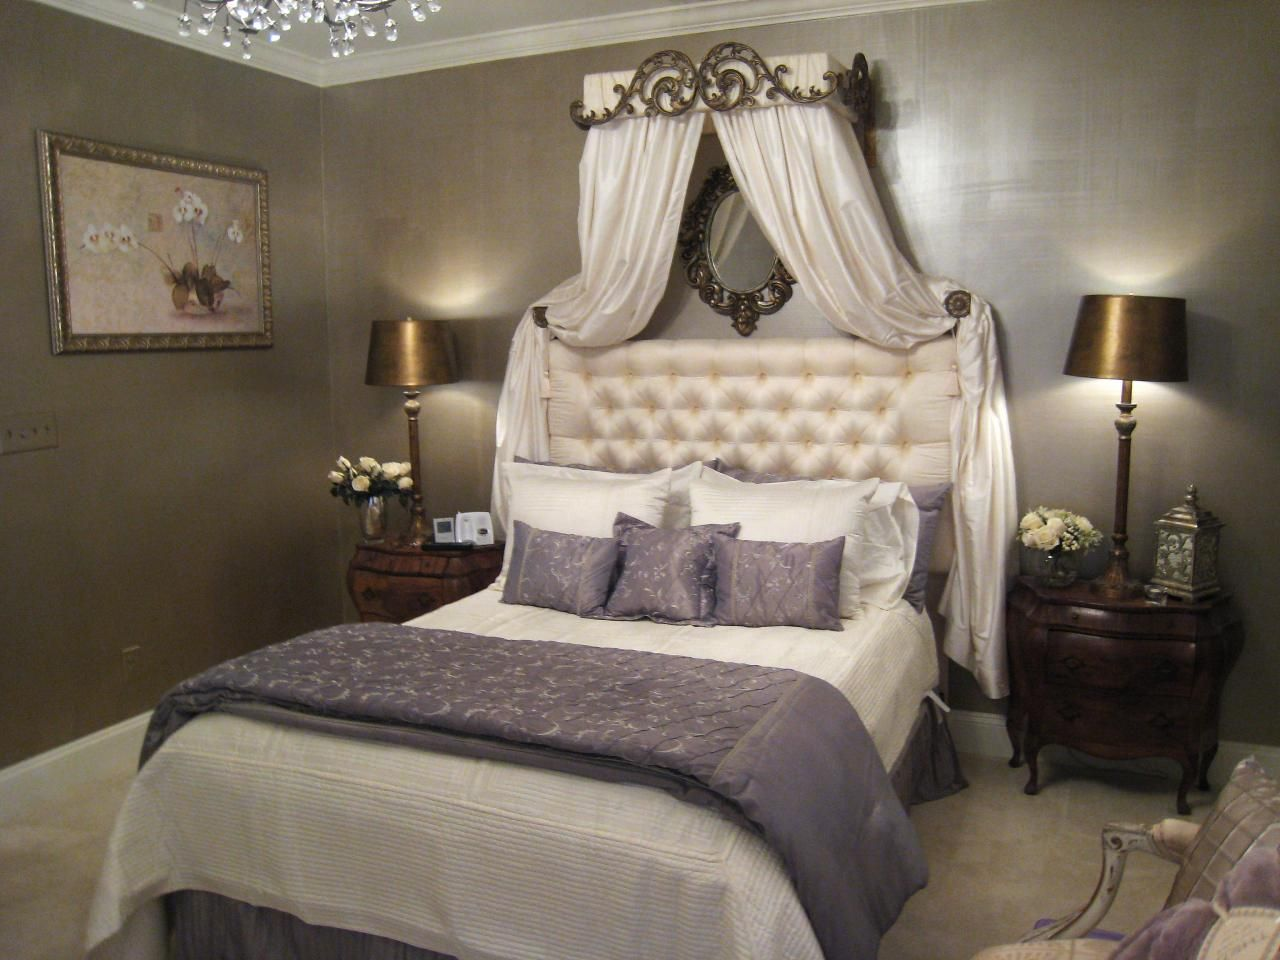 Bedroom Decor, Bed Crown